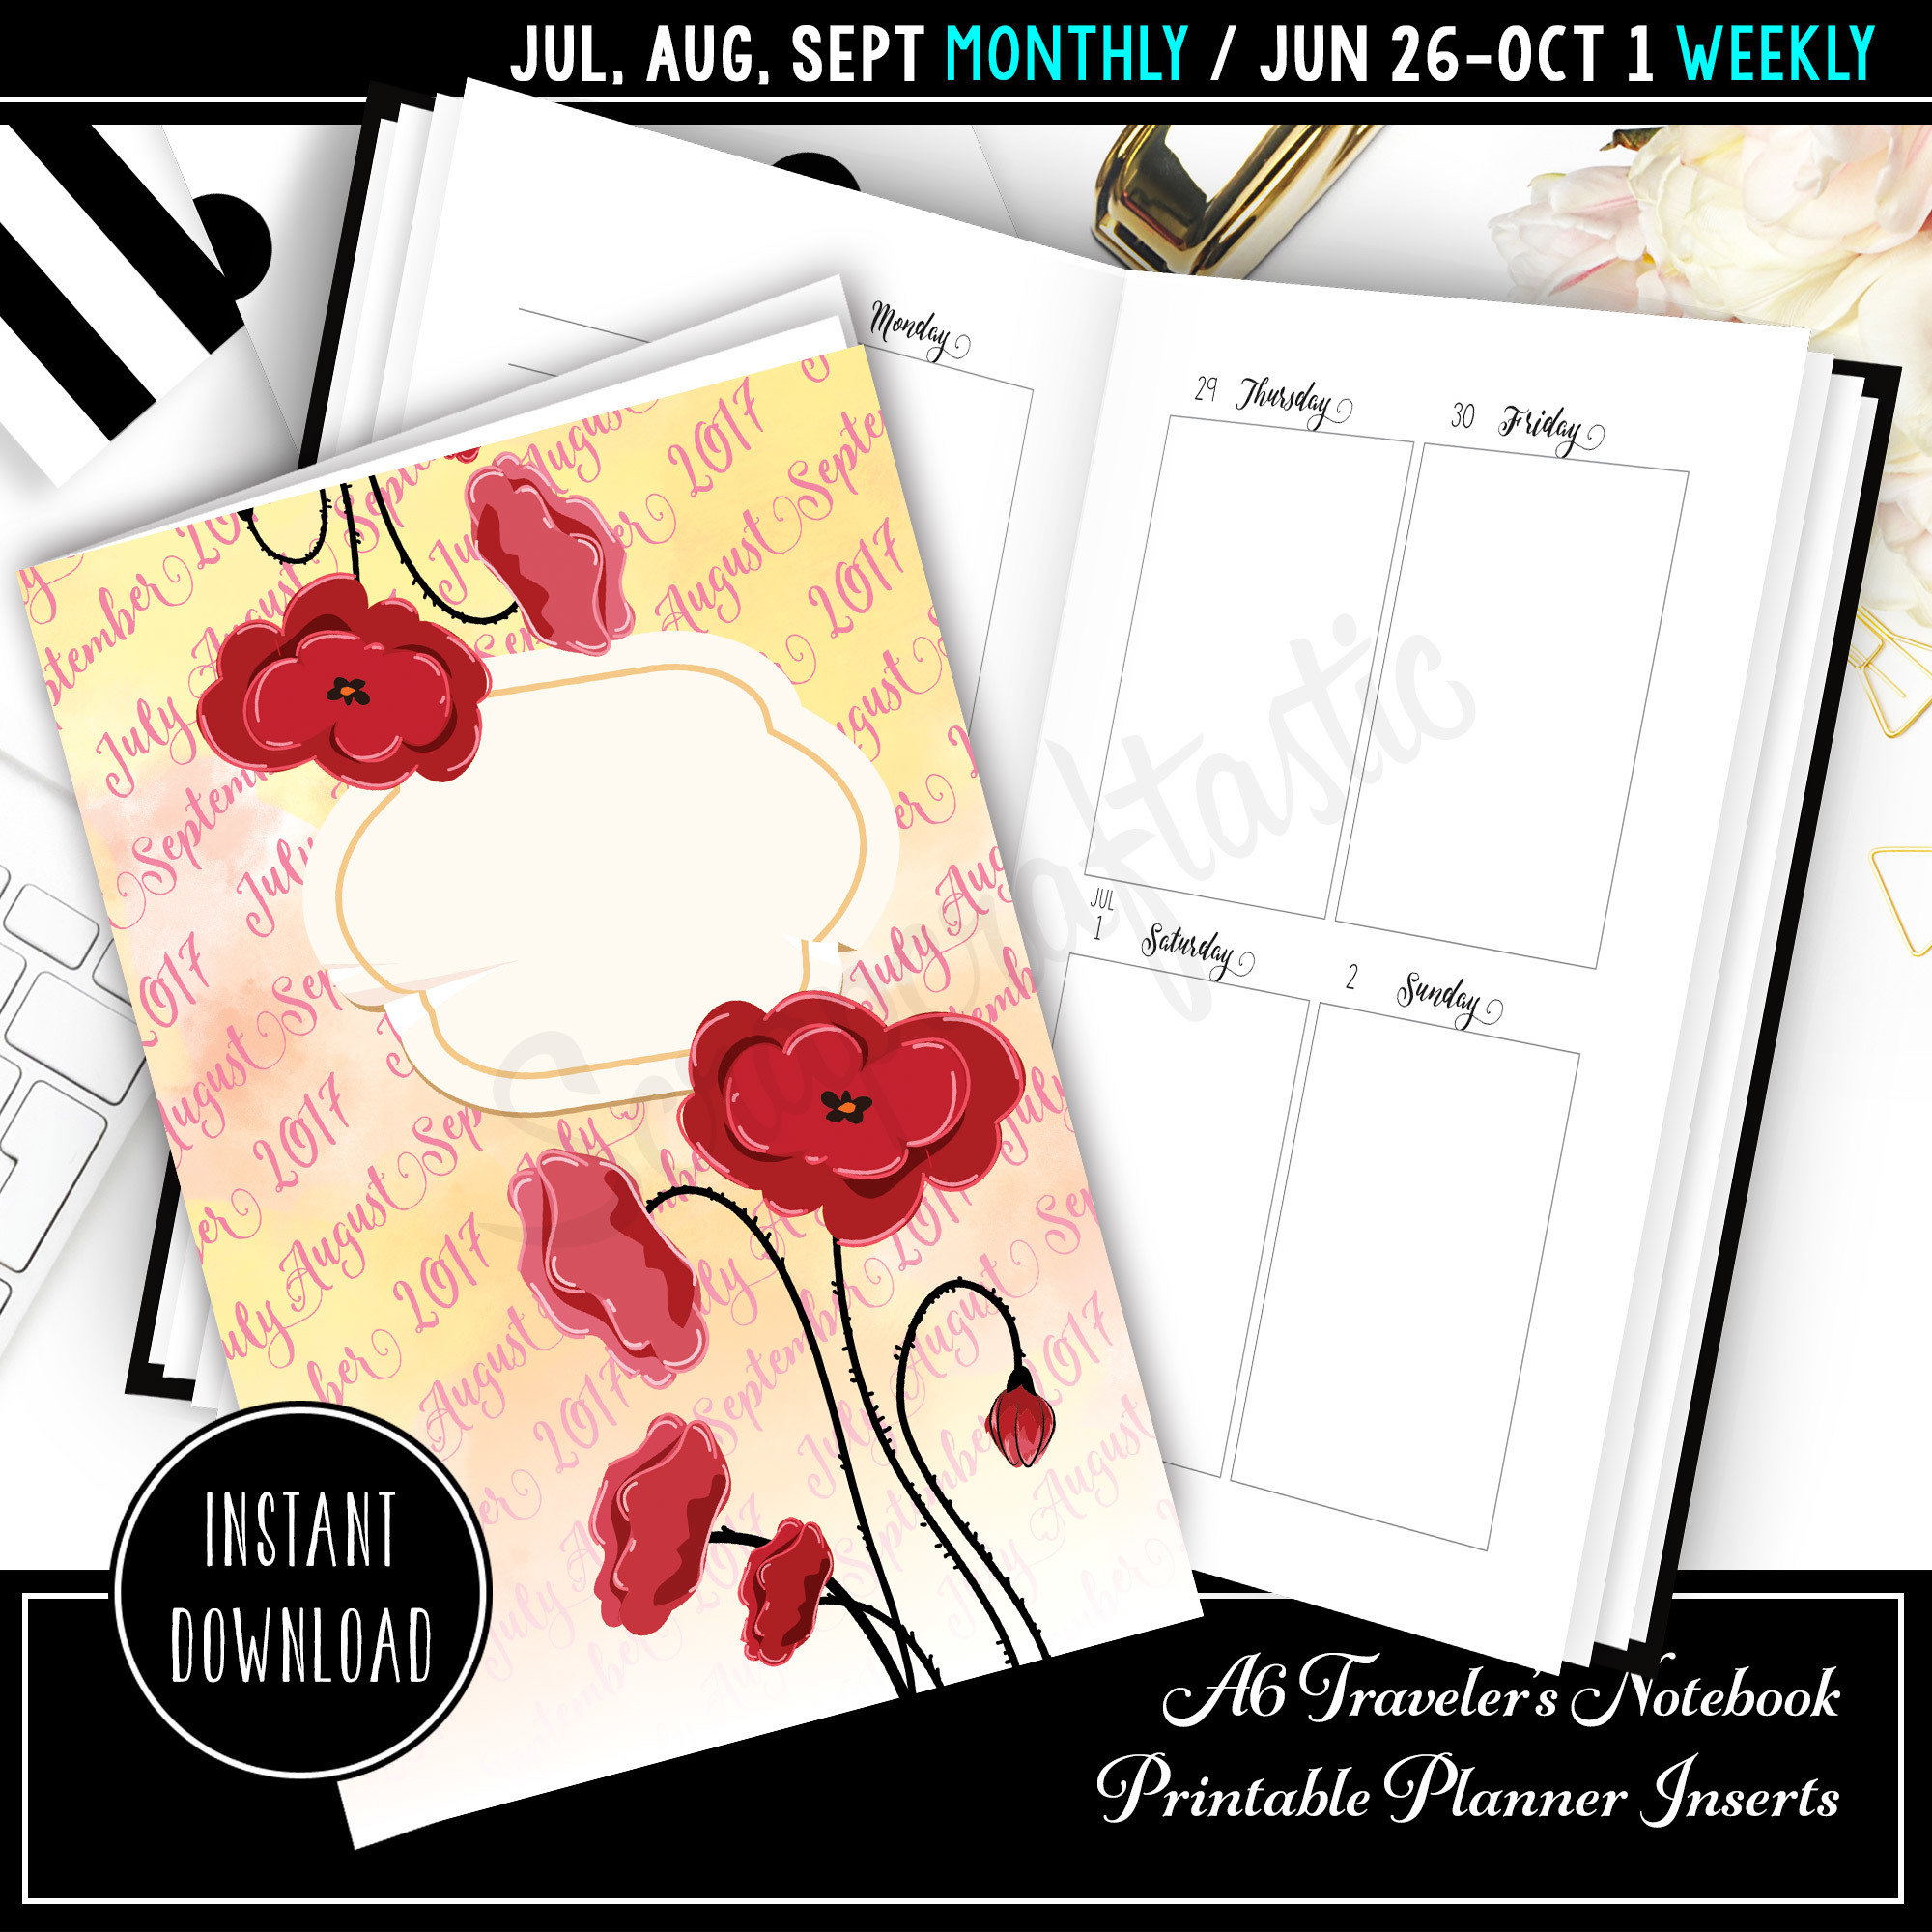 Jul-Sep 2017 A6 Traveler's Notebook Printable Planner Inserts 40001